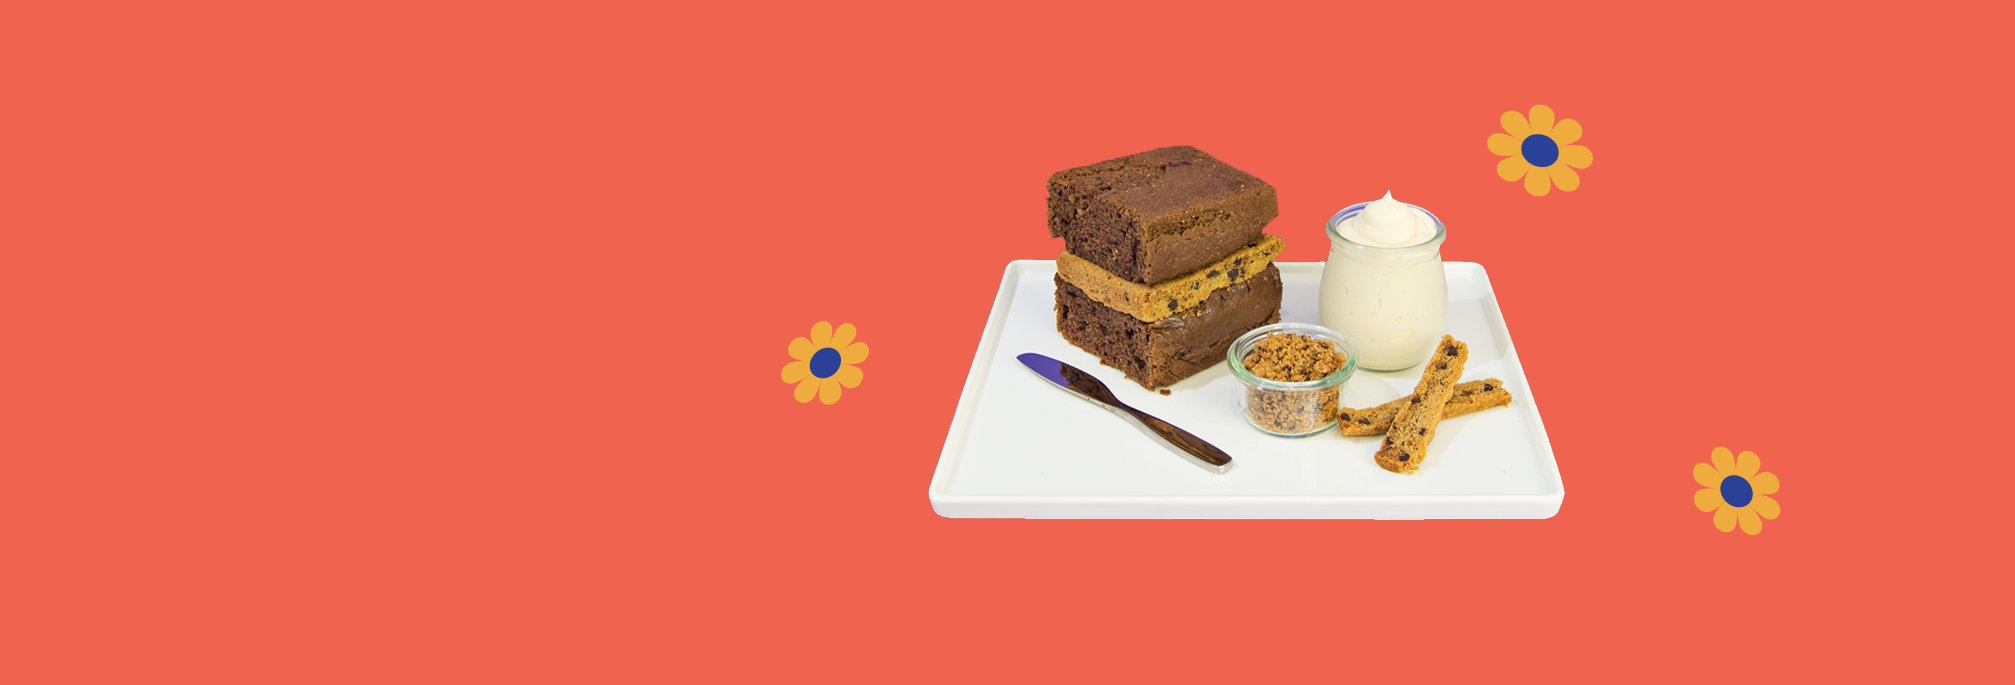 files/Liteful-Foods-Cake-Kits-Header3.png